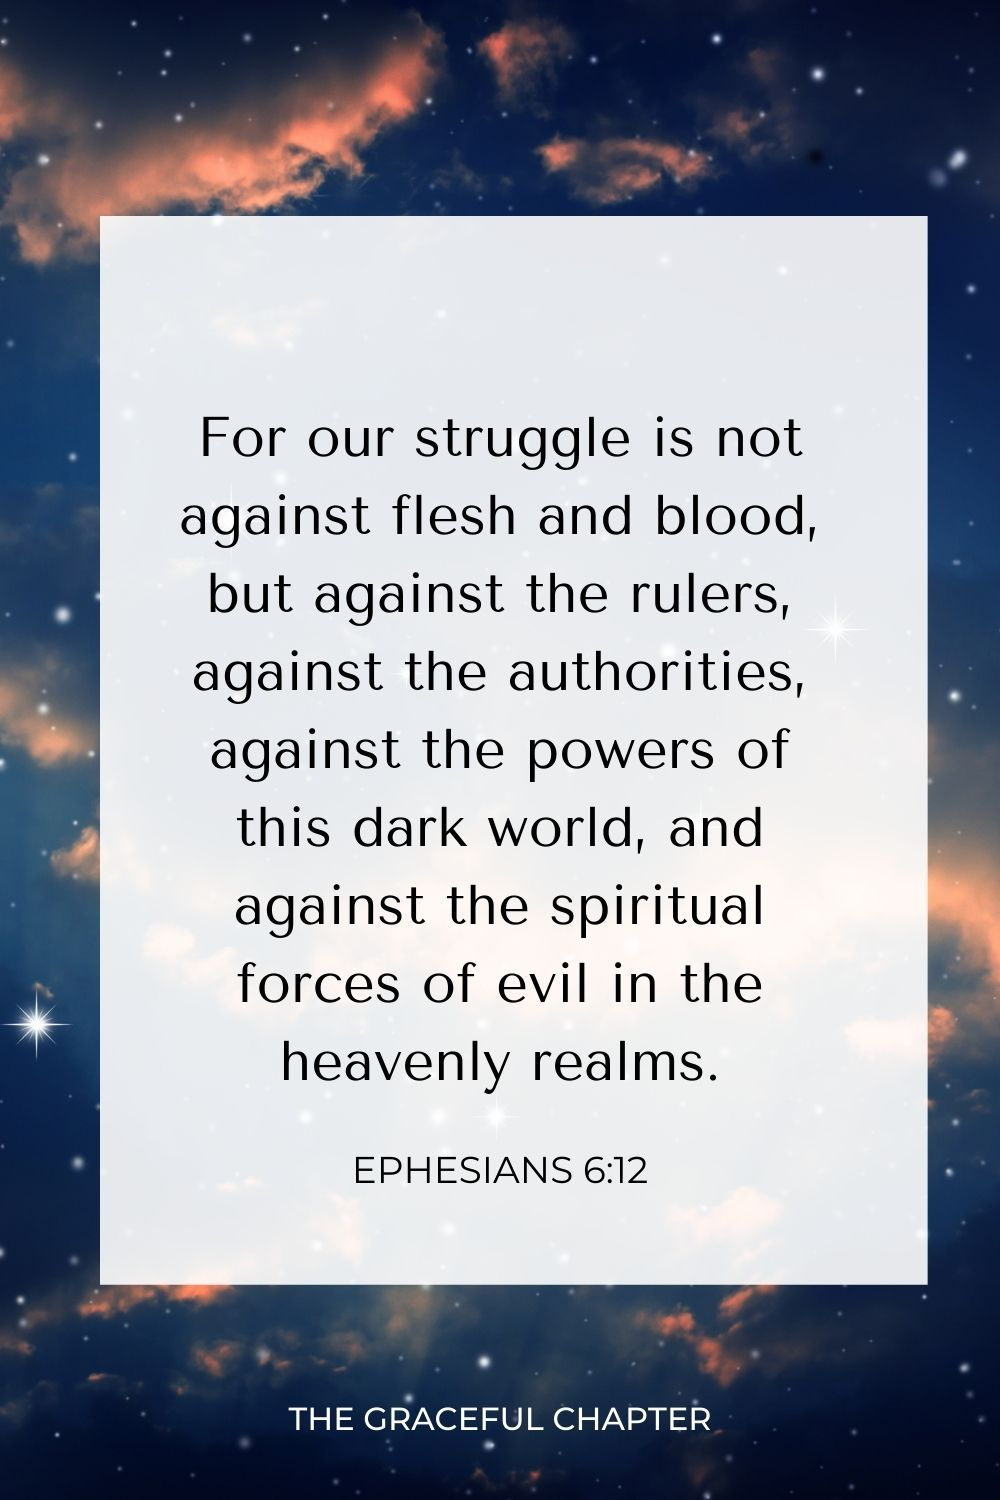 For our struggle is not against flesh and blood, but against the rulers, against the authorities, against the powers of this dark world, and against the spiritual forces of evil in the heavenly realms. Ephesians 6:12